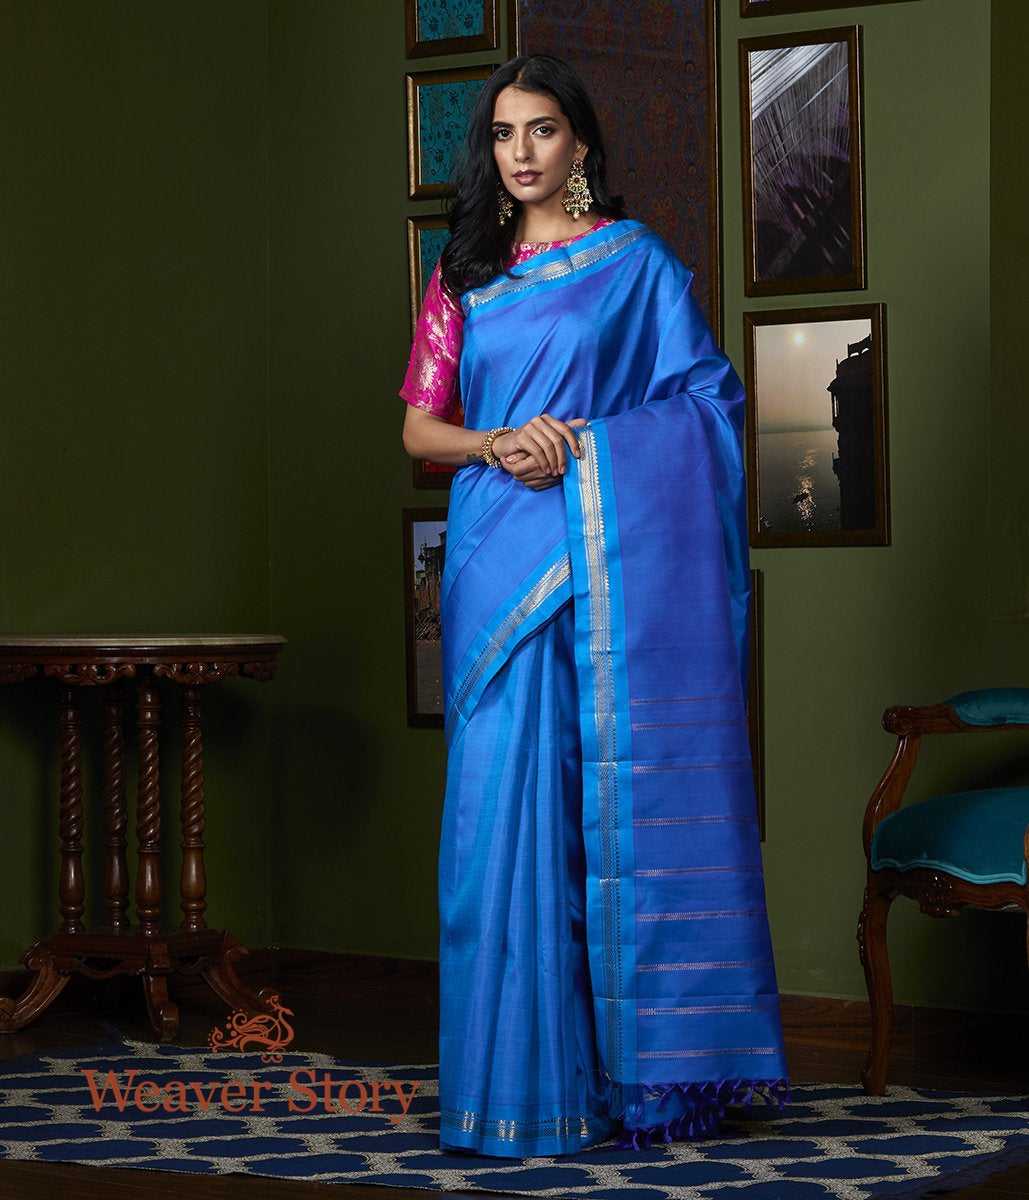 Handwoven Cobalt Blue Kanjivaram Silk Saree with Turquoise and Gold Border